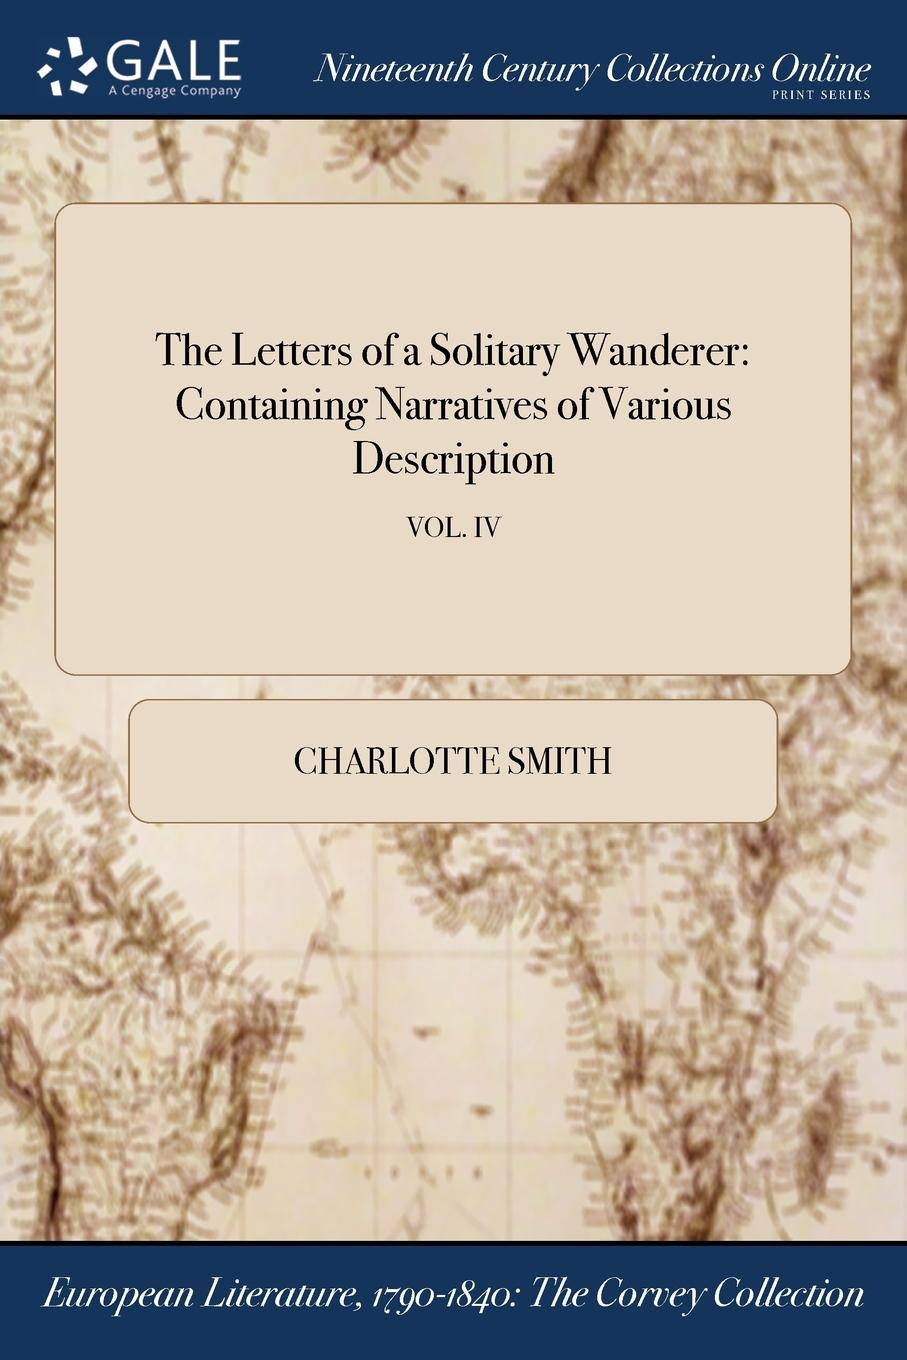 The Letters of a Solitary Wanderer. Containing Narratives of Various Description; VOL. IV